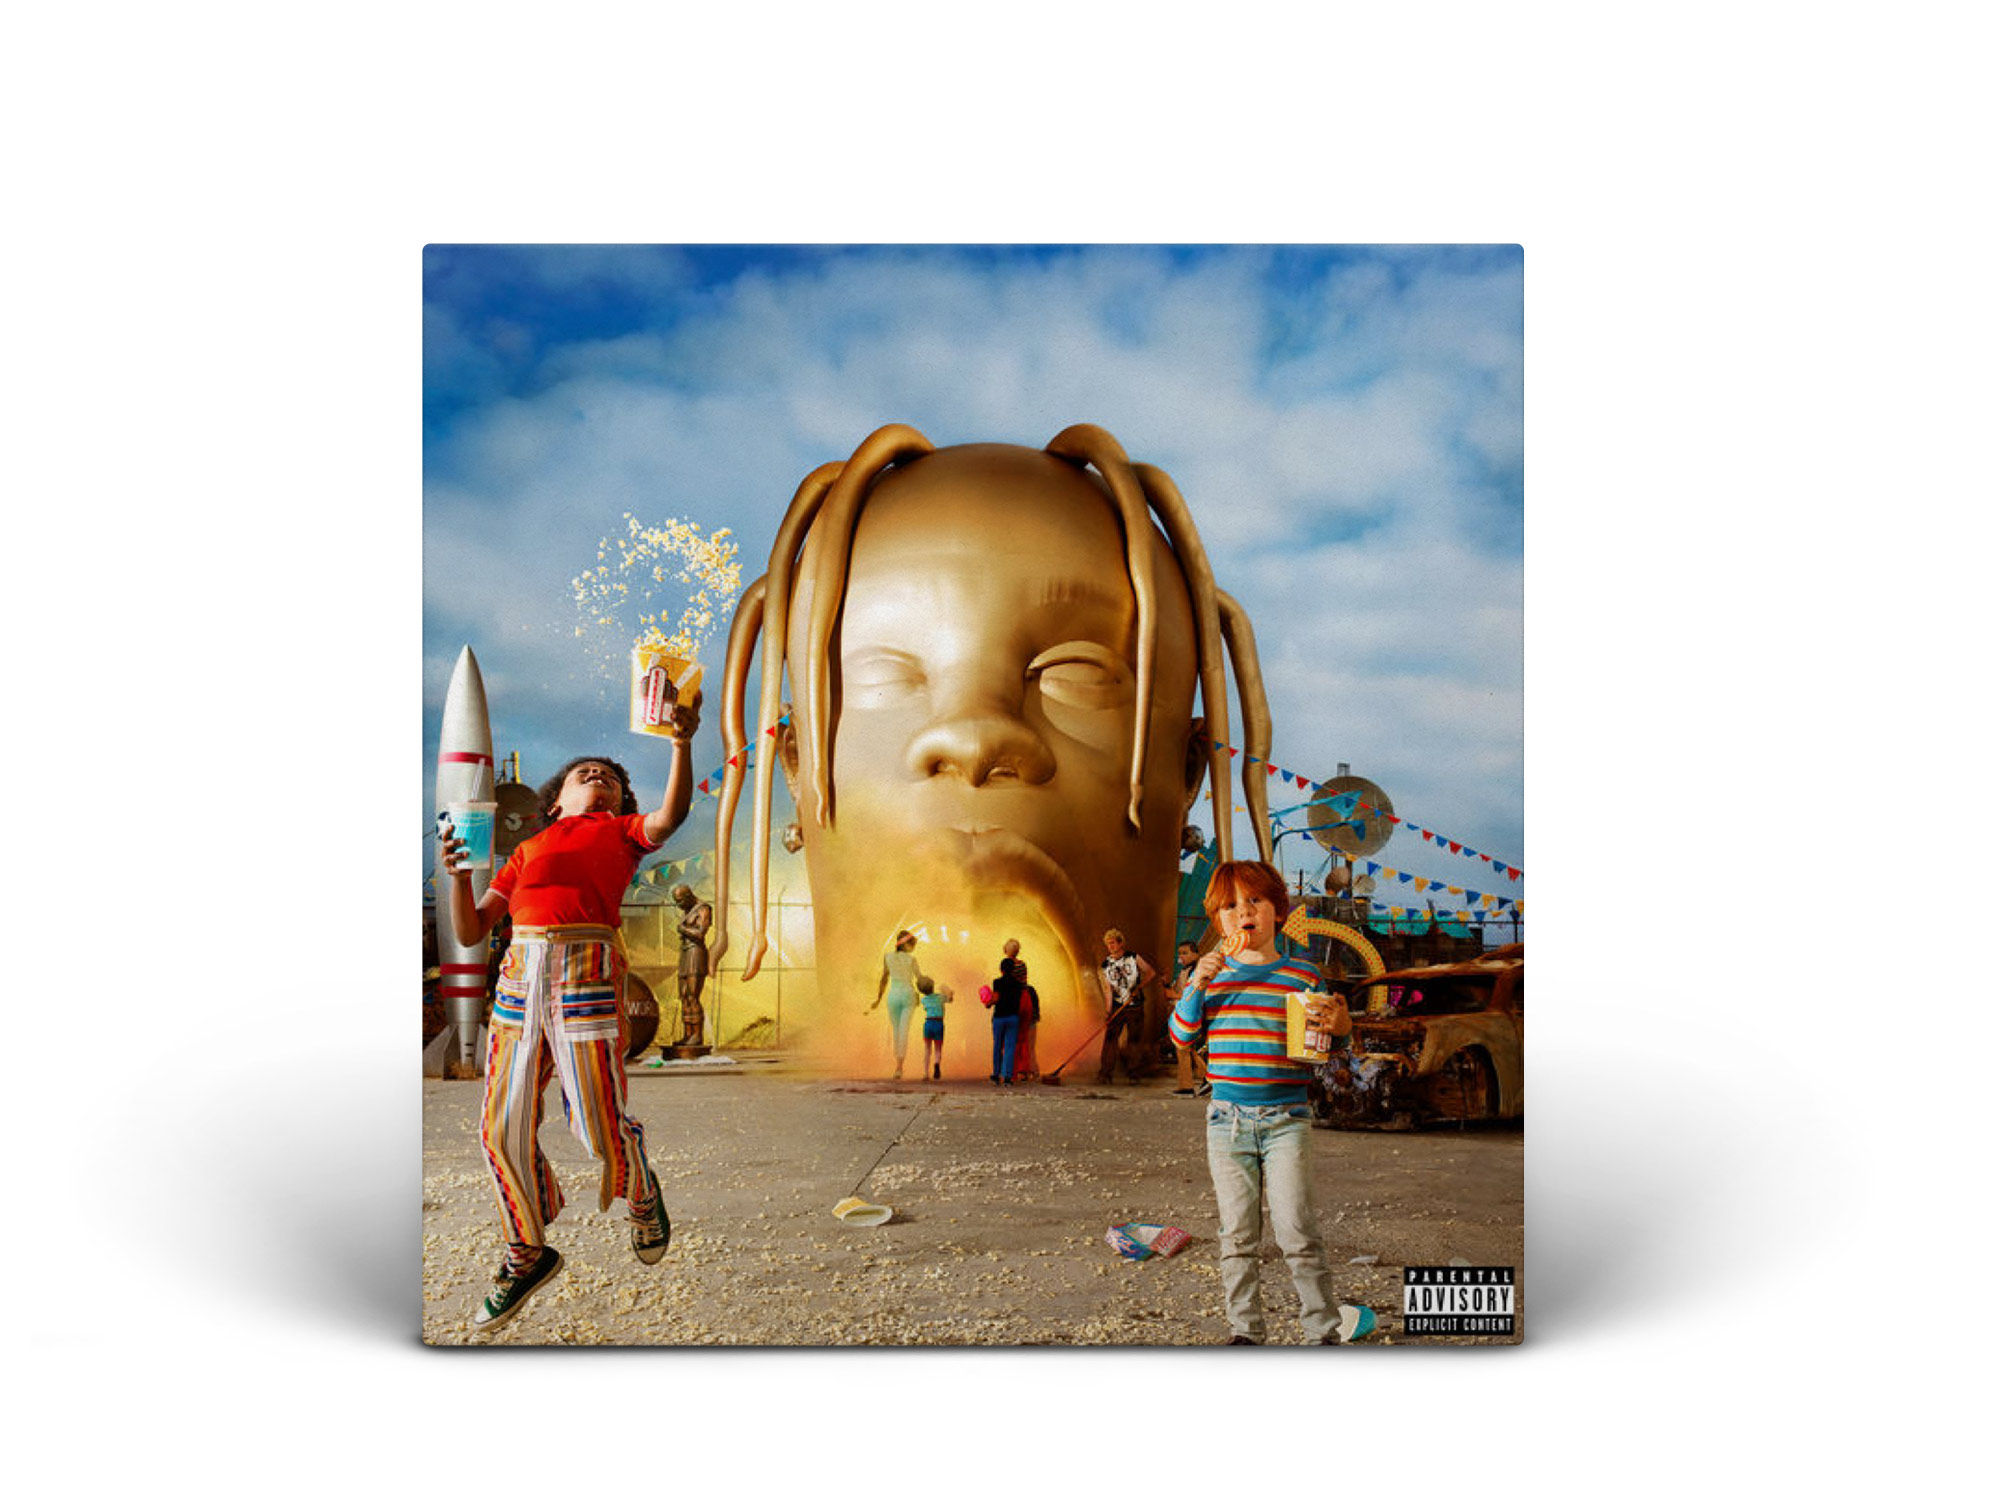 STOP TRYING TO BE GOD / Travis Scott - Best mesmerizing collective soundscape.